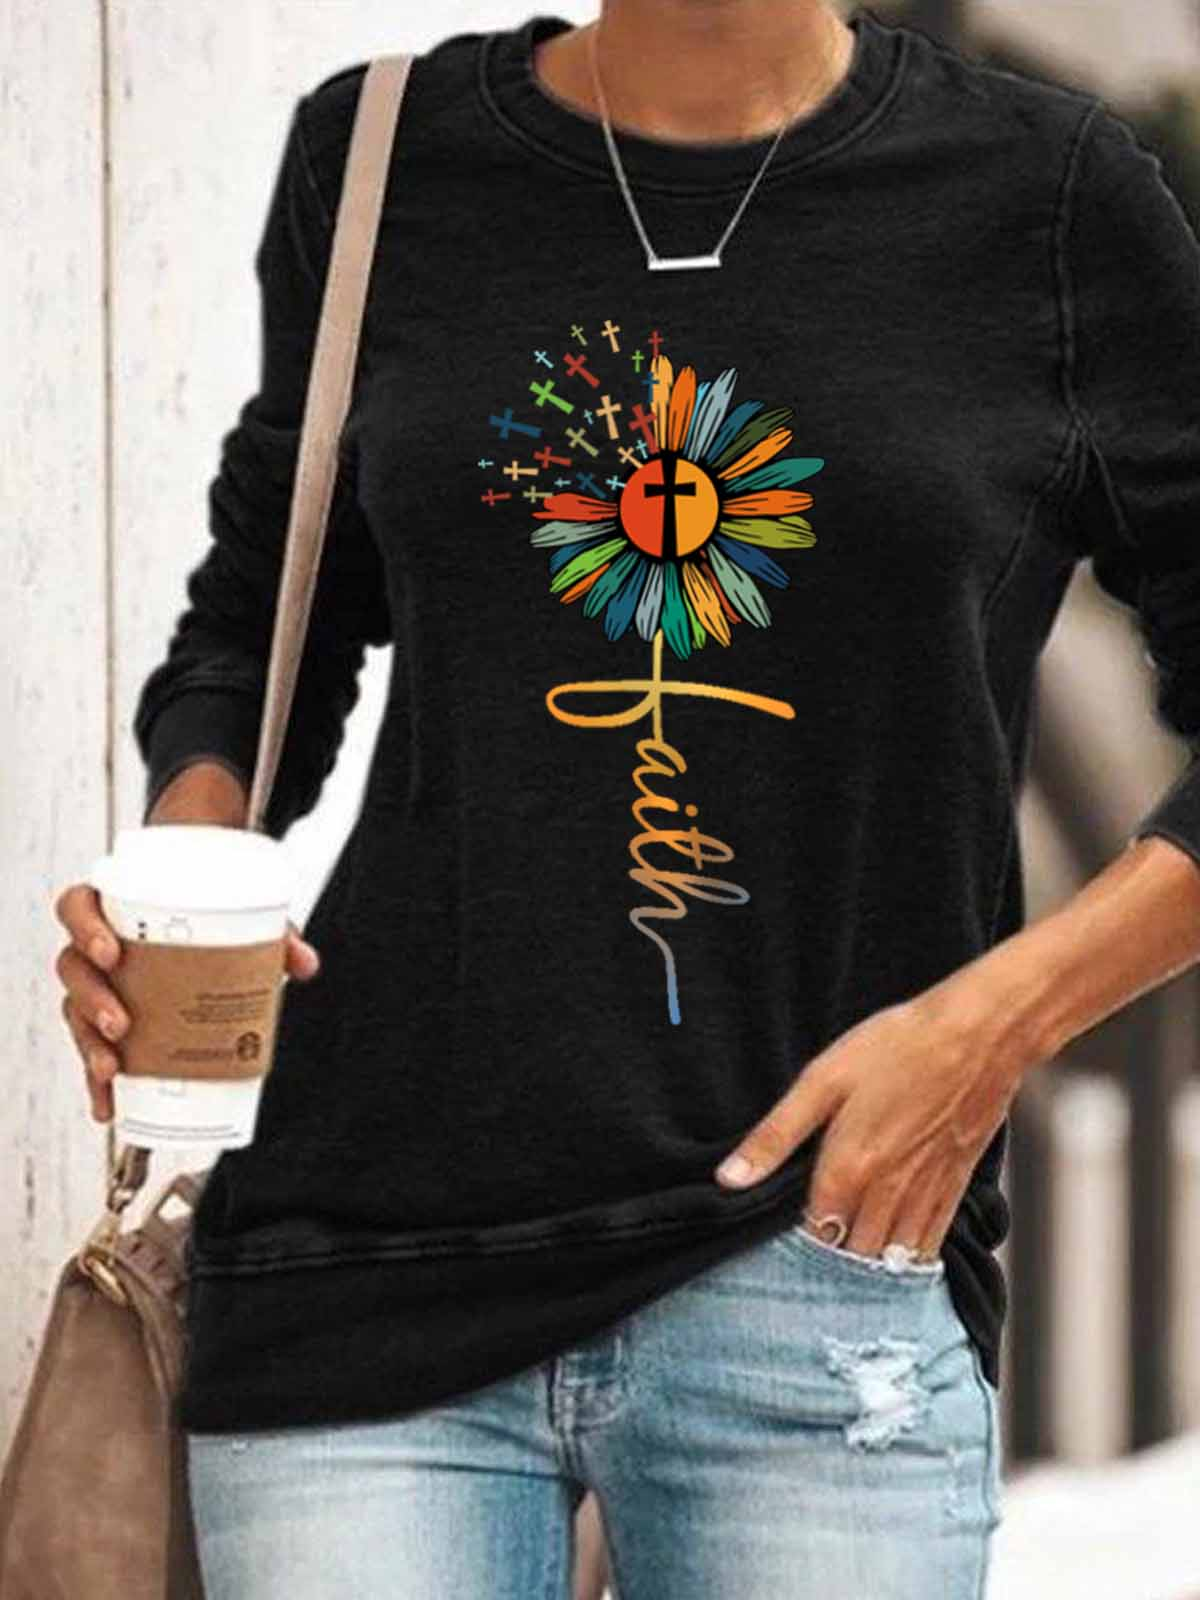 Women's Faith Cross Sunflower Color Print Top